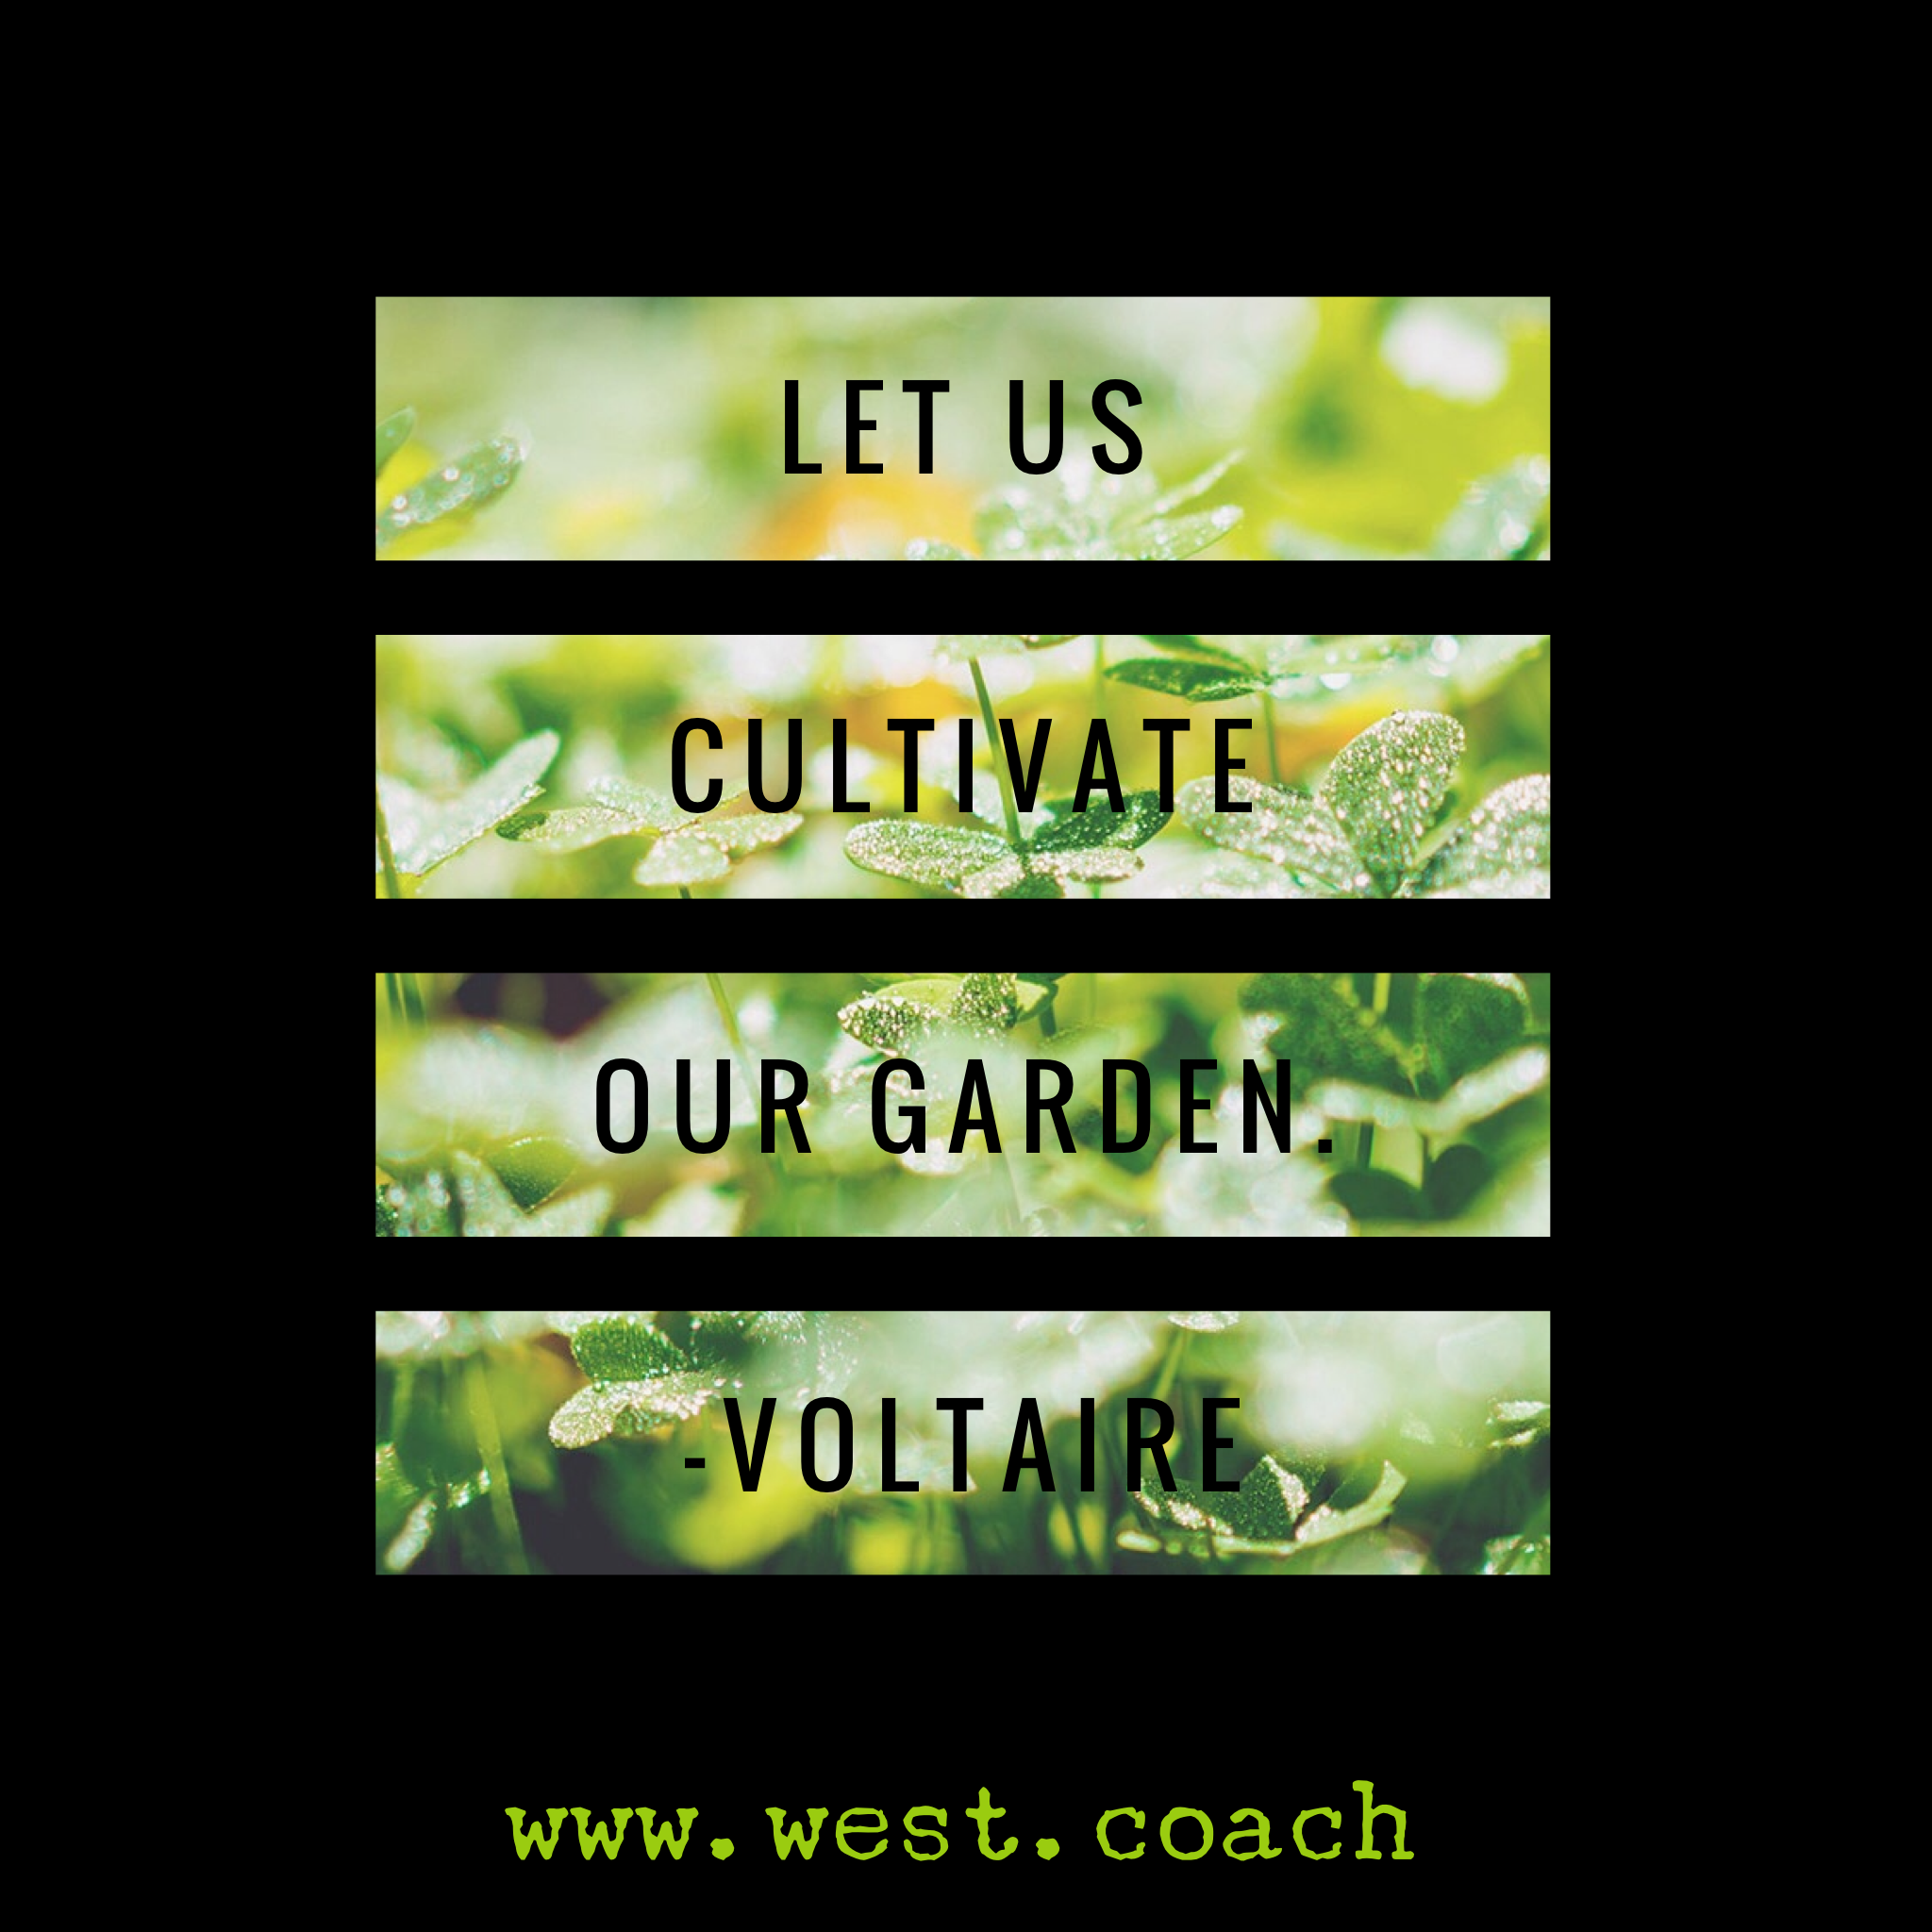 Inspirational Daily Quotes Life Let Us Cultivate Our Garden  Voltaire Eileen West Life Coach